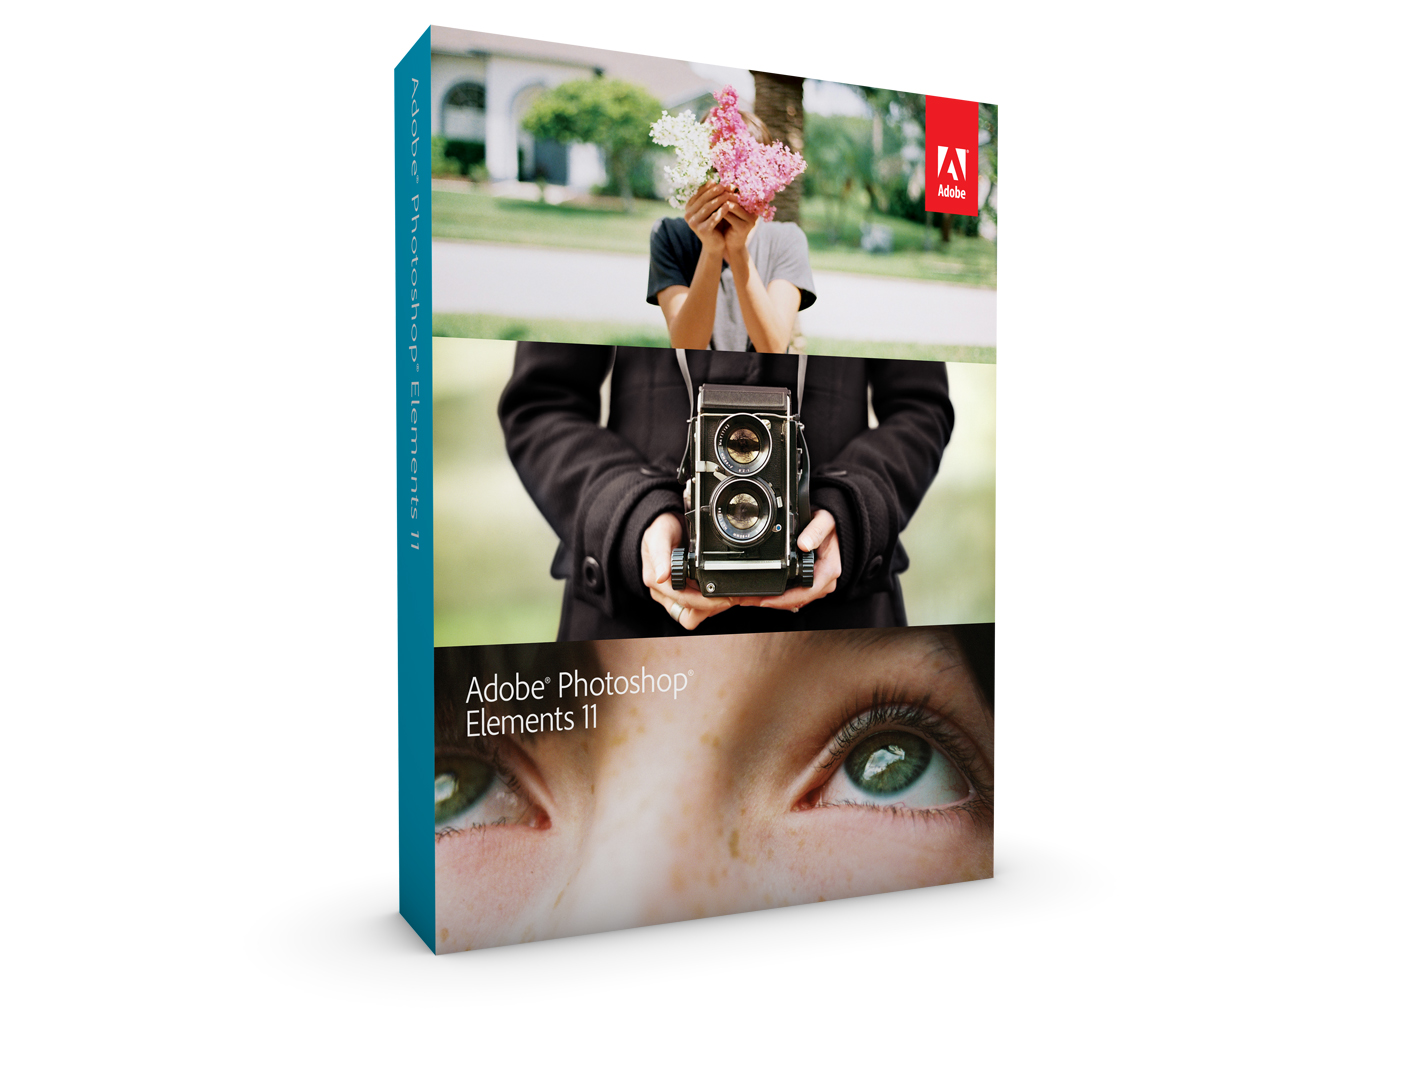 Adobe Photoshop Elements 11 is launched